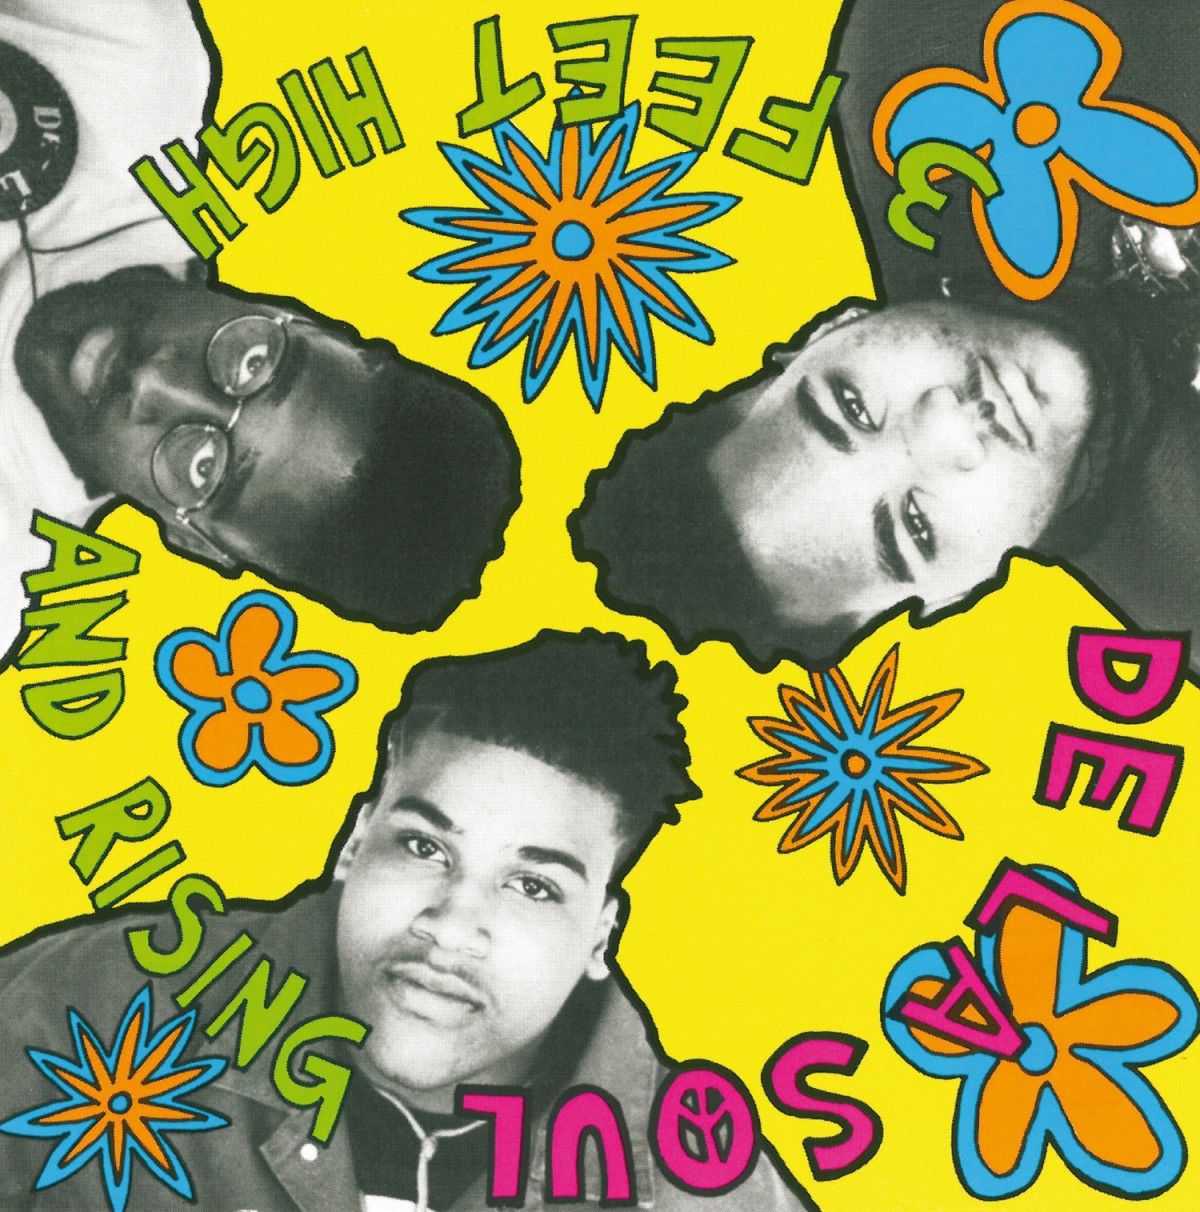 De La Soul 3 Feet High and Rising review